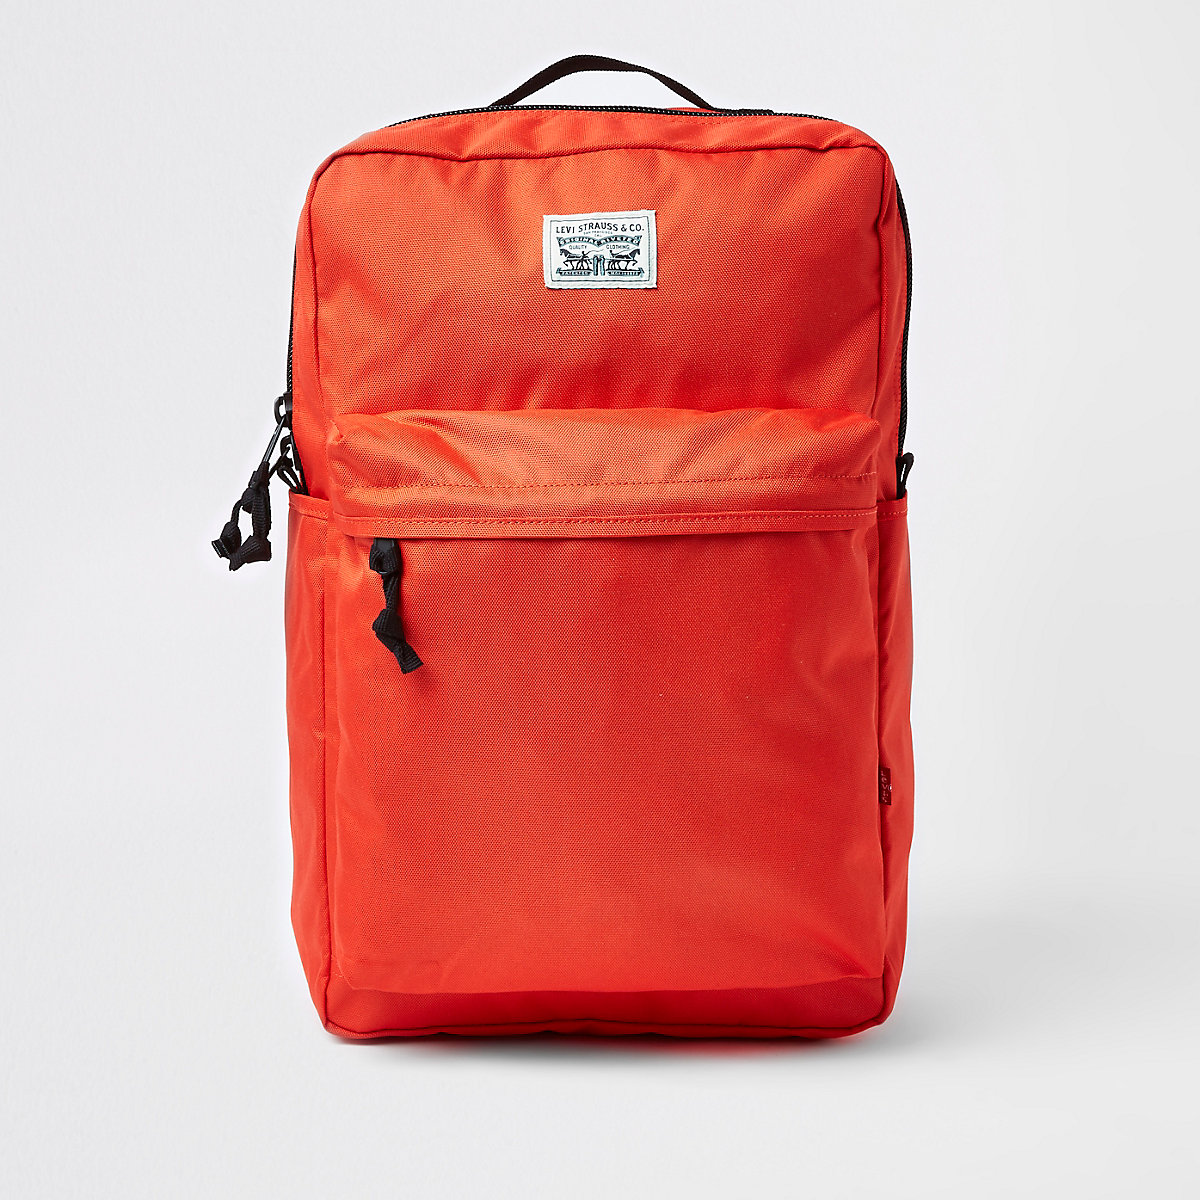 Levi's orange backpack